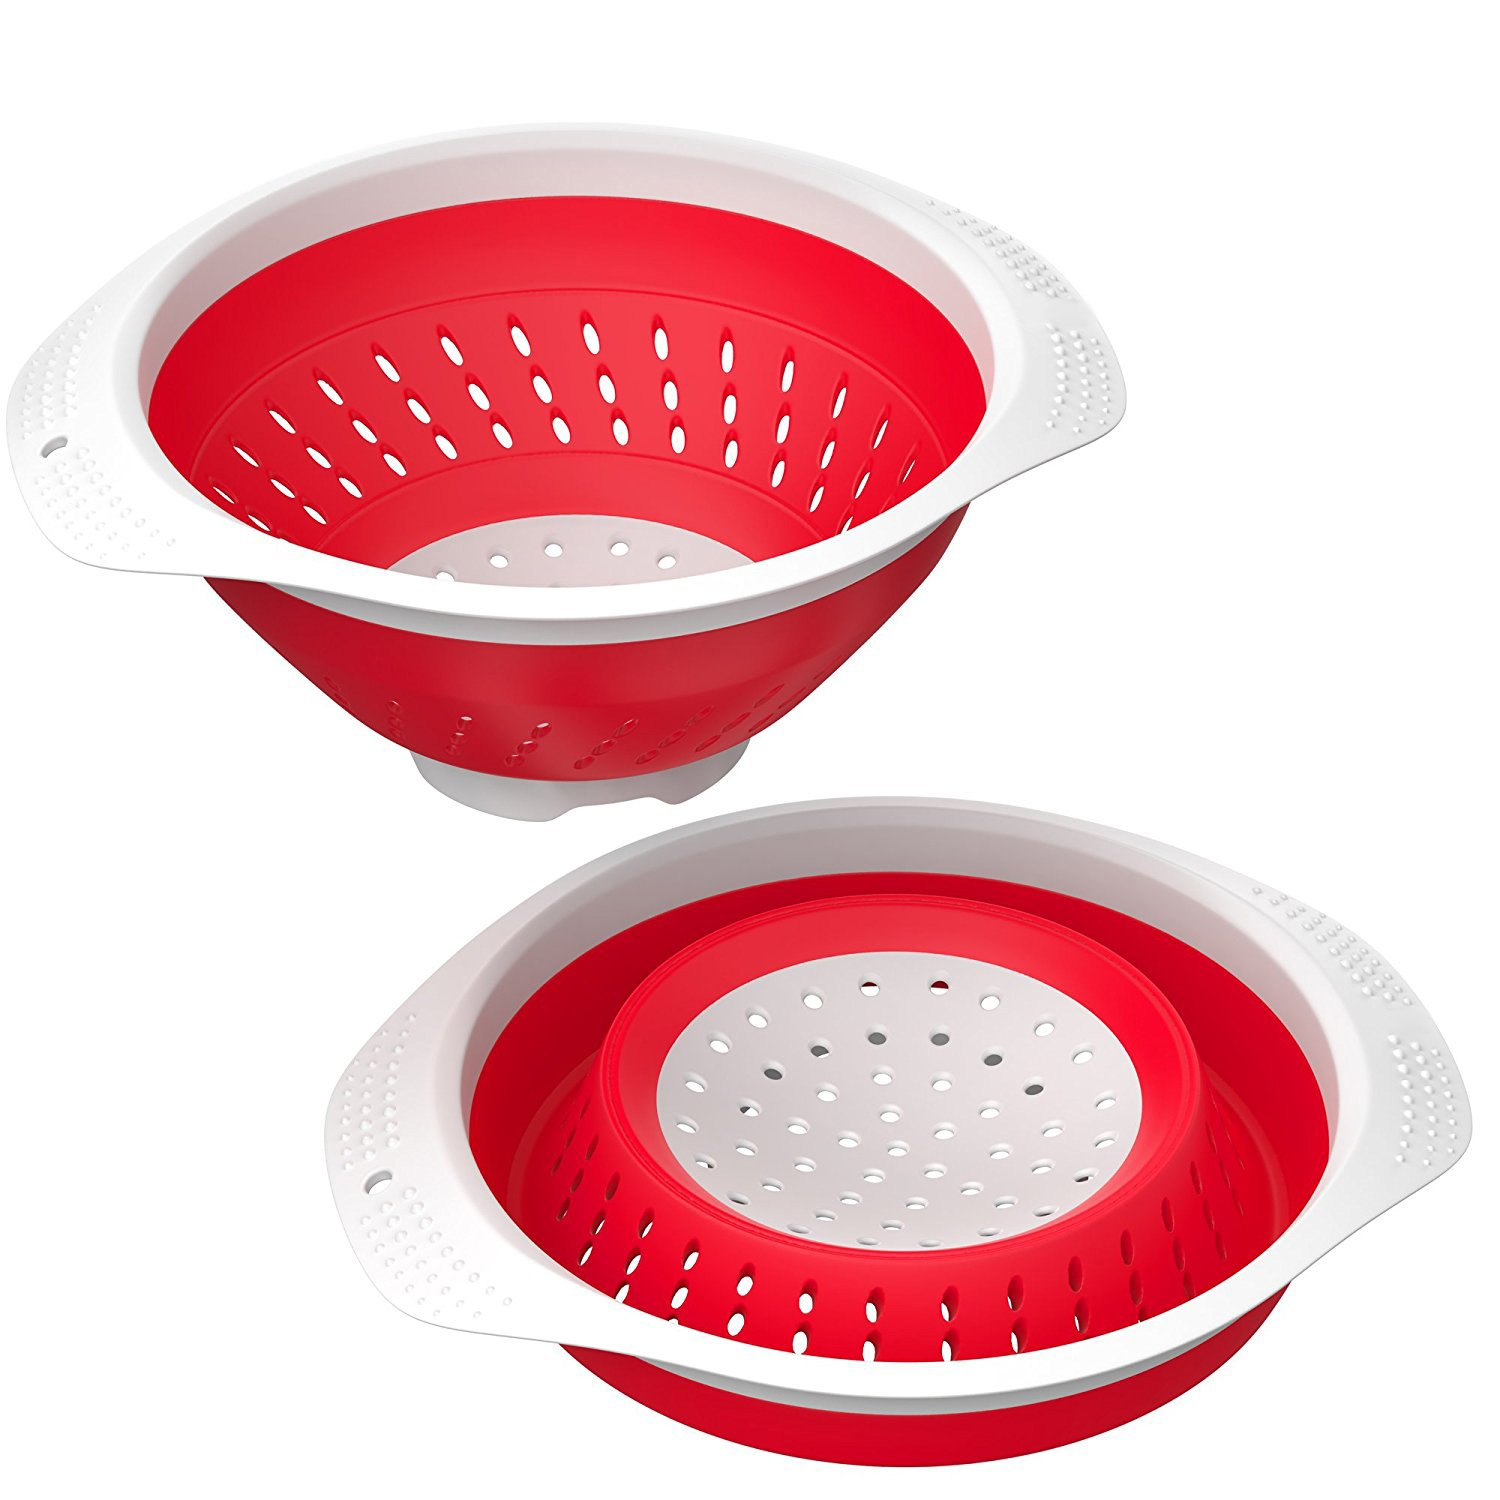 Fyuan 5000ml Collapsible Colander - Heavy Duty Foldable and Heat Resistant Kitchen Drainer Steam Basket for Pasta and Vegetable Fruit - BPA Free Silicone Food Strainer with Handles - Dishwasher Safe - Red Liankeweidianzi